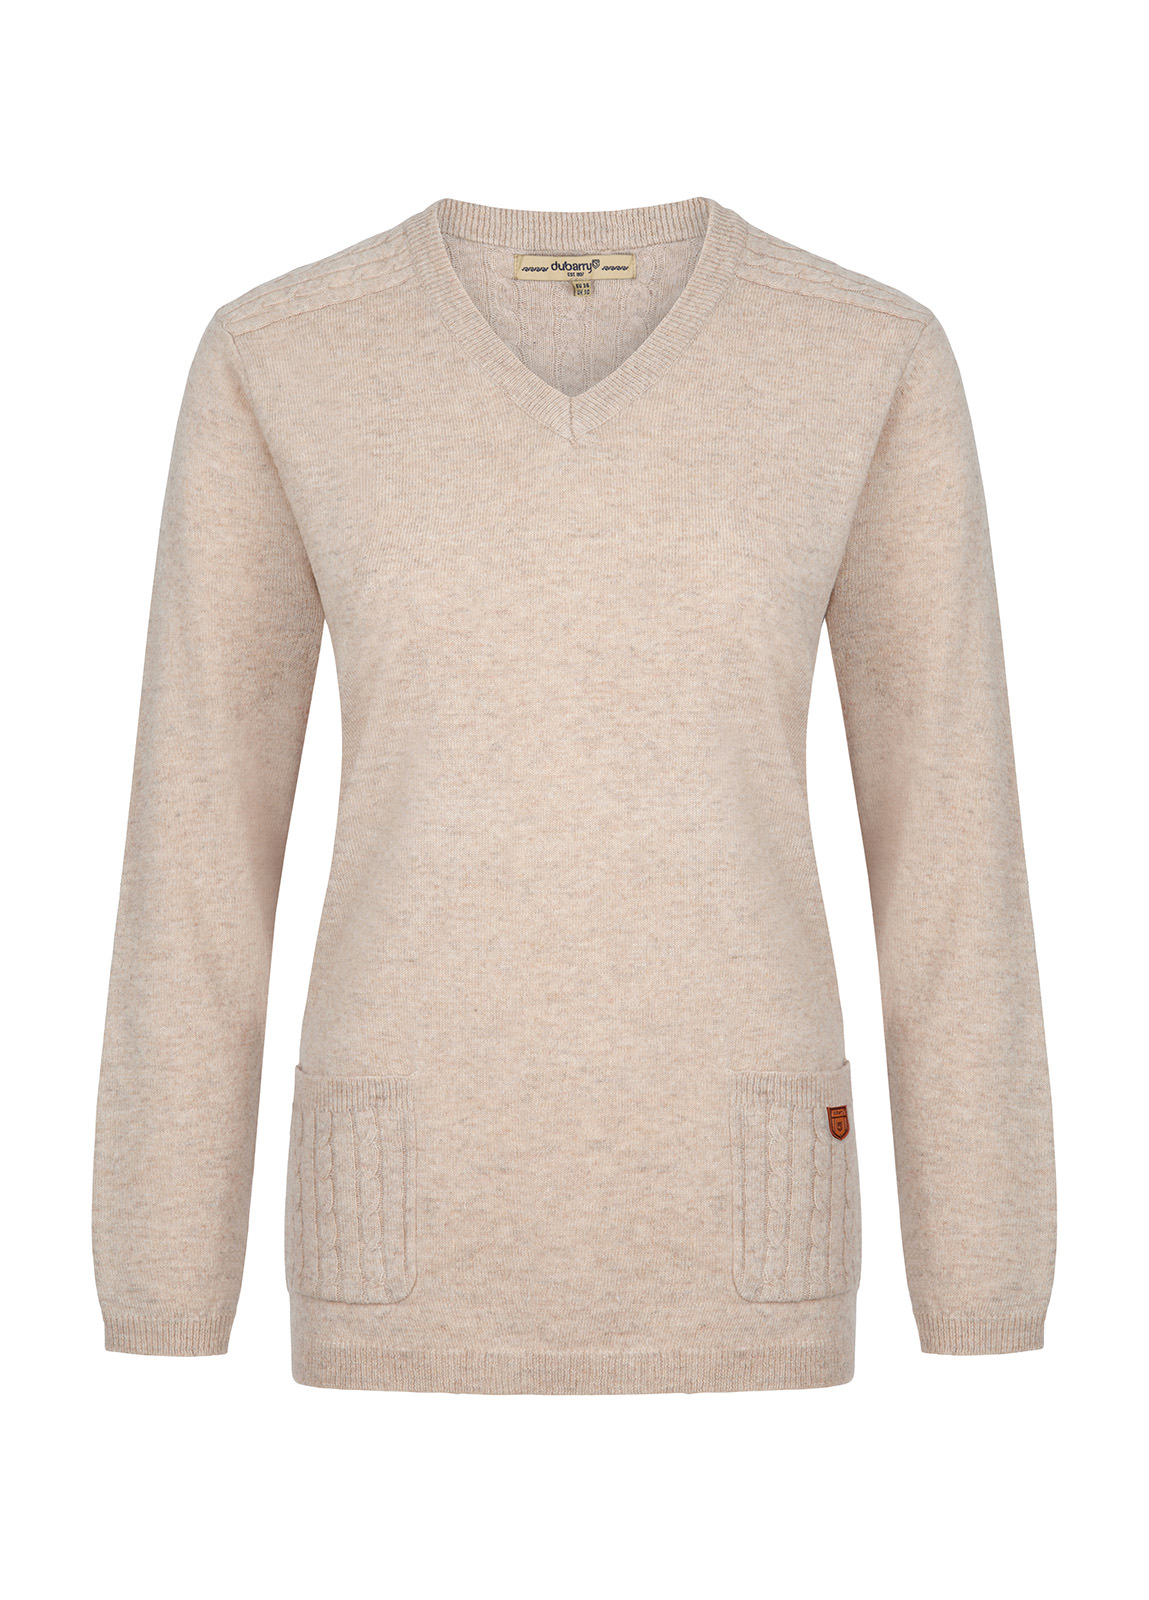 Dubarry_ Flaherty Ladies Knitted Lambswool Jumper - Oatmeal_Image_2